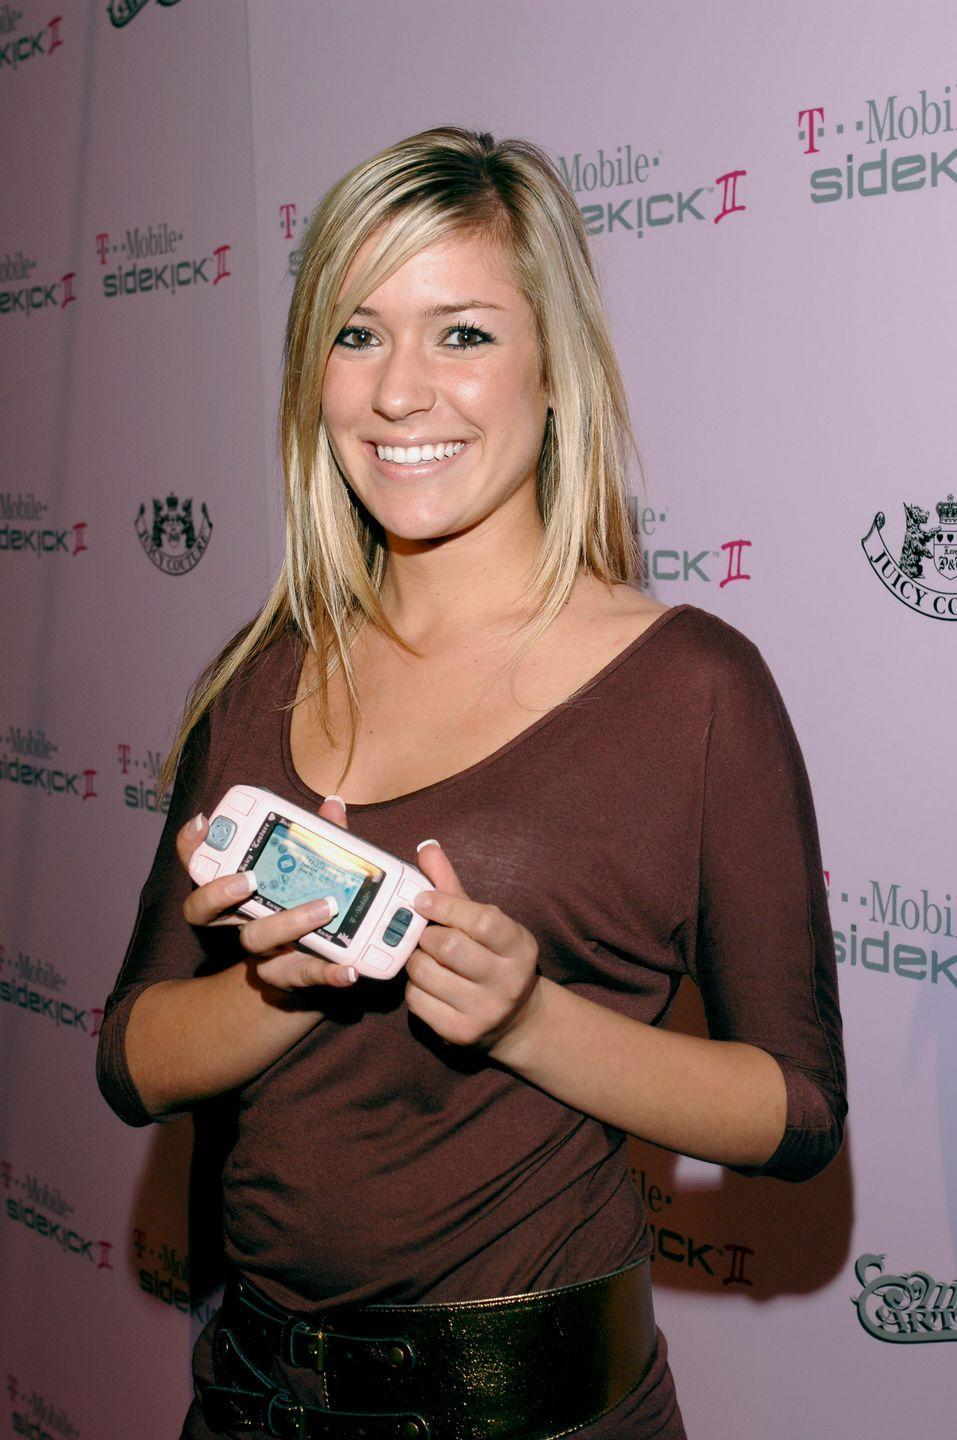 """<p>The """"baddie"""" of MTV's <em>Laguna Beach</em>, Kristin Cavallari, poses with the latest and greatest T-Mobile Sidekick II, aka the most coveted cell phone of the 2000s. </p>"""